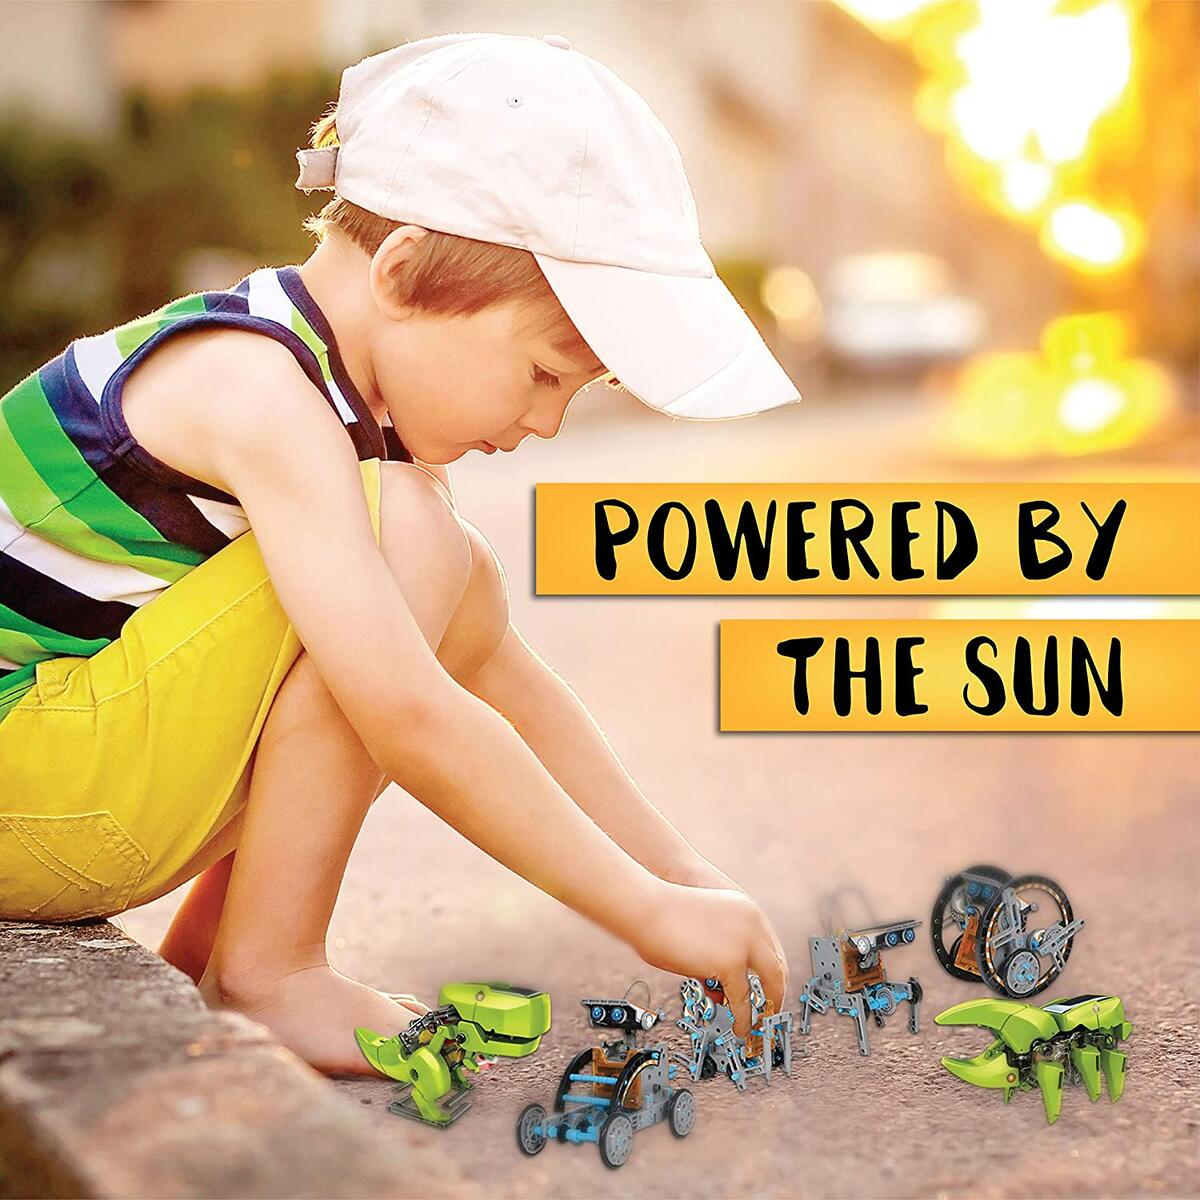 ToyVelt 12 in 1 Solar Robot Kit Plus A 3 in 1 Solar Building Toy and A Beatiful Storage Container Solar Powered by The Sun STEM Toys for Boys and Girls Ages 8,9,10,11,12 Years Old